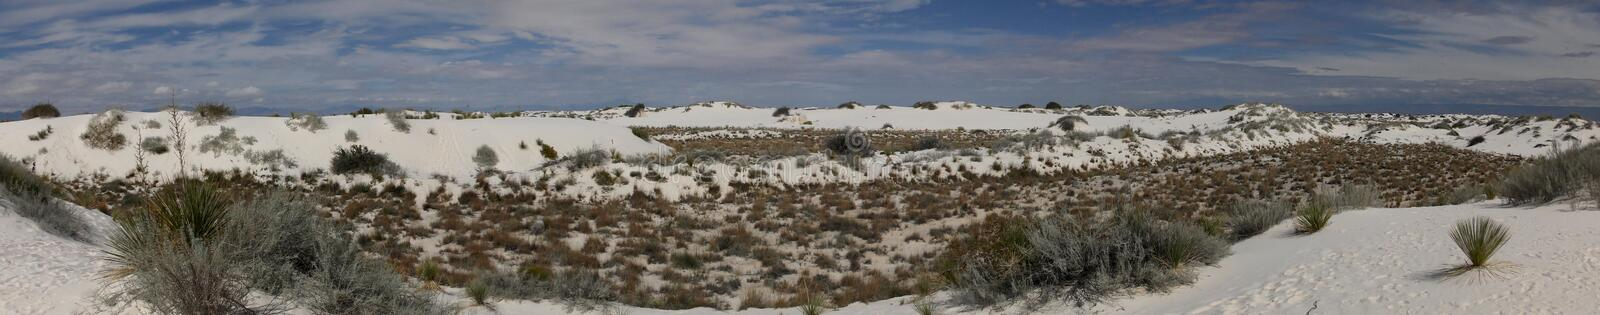 White sands in New Mexico. White Sands National Monument, dunes in New Mexico wilderness. Panoramic high resolution view royalty free stock image